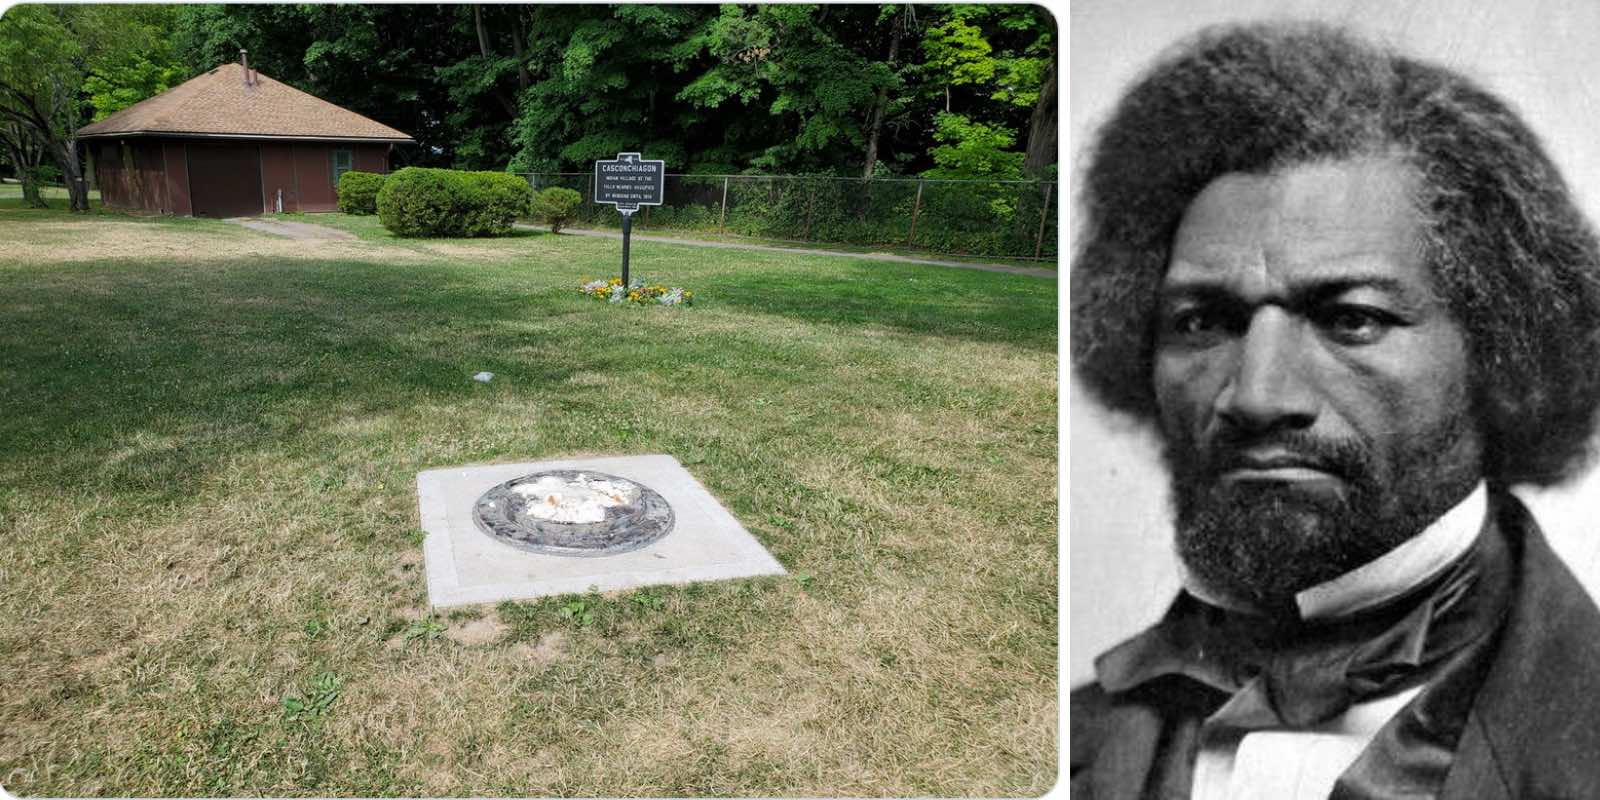 Statue of celebrated orator and abolitionist Frederick Douglass vandalized and toppled